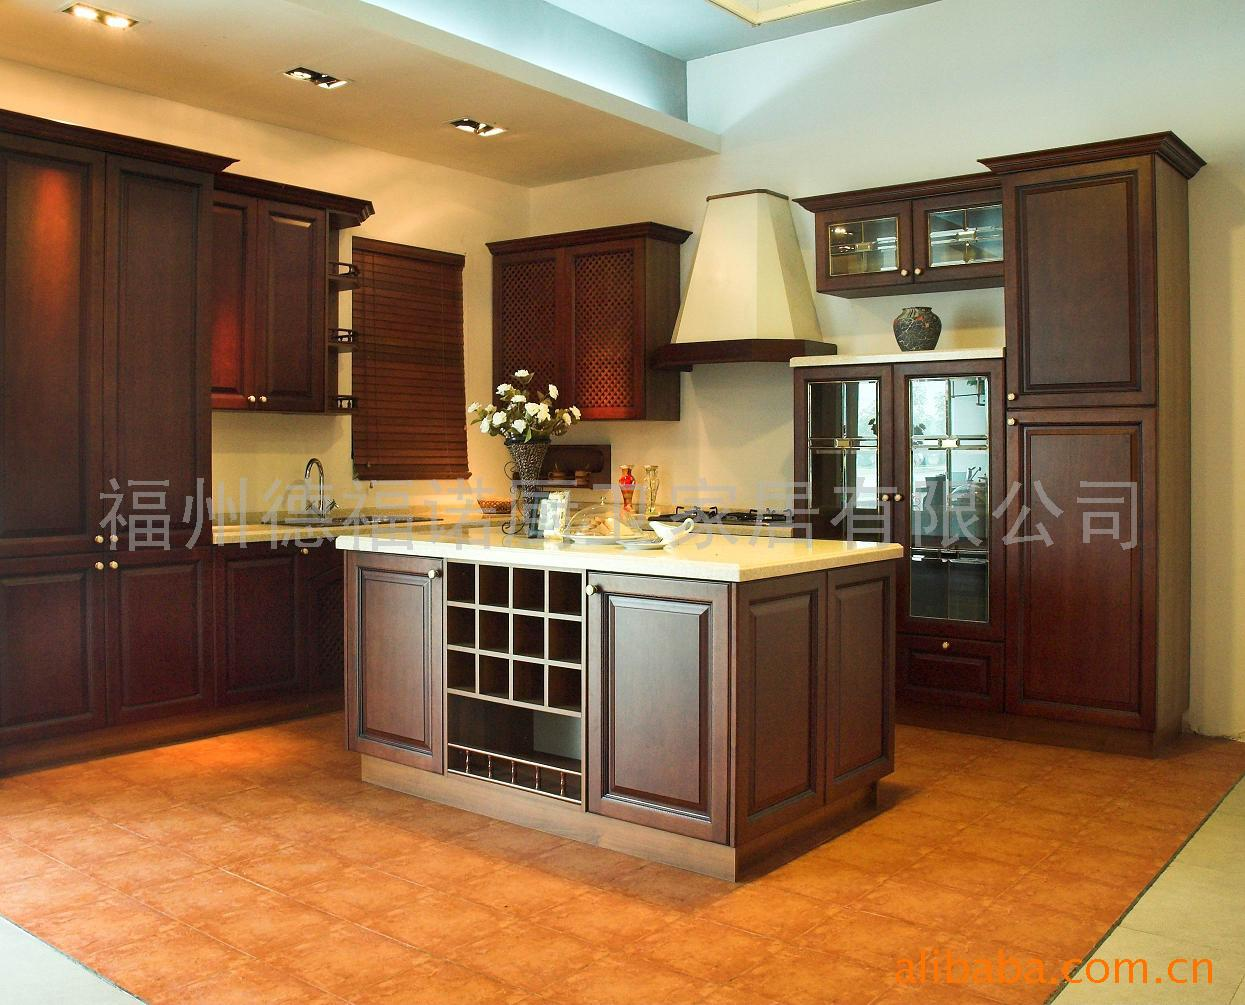 Discount Unfinished Wood Kitchen Cabinets ~ Discount kitchen cabinets maryland